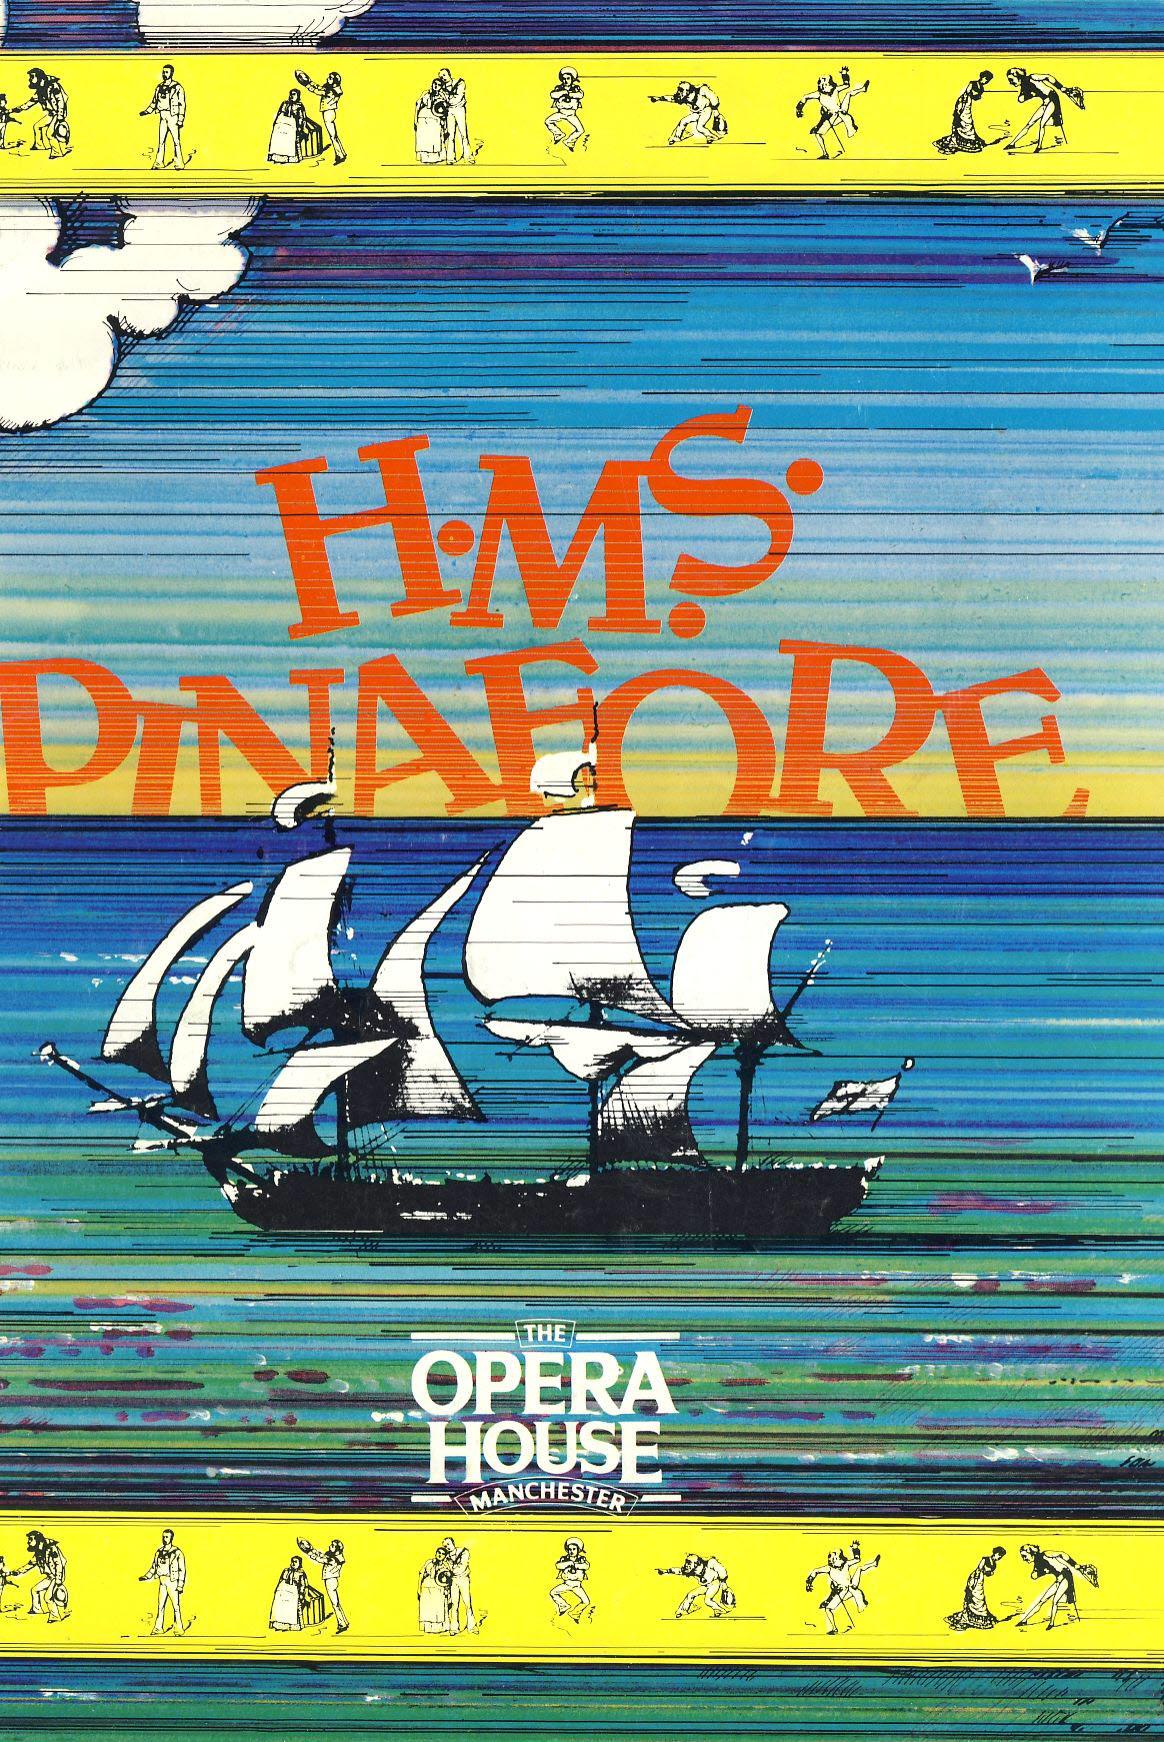 HMS PINAFORE Opera House MANCHESTER 1986 Theatre Programme refb1399 Measures approx 22cm x 29cm.